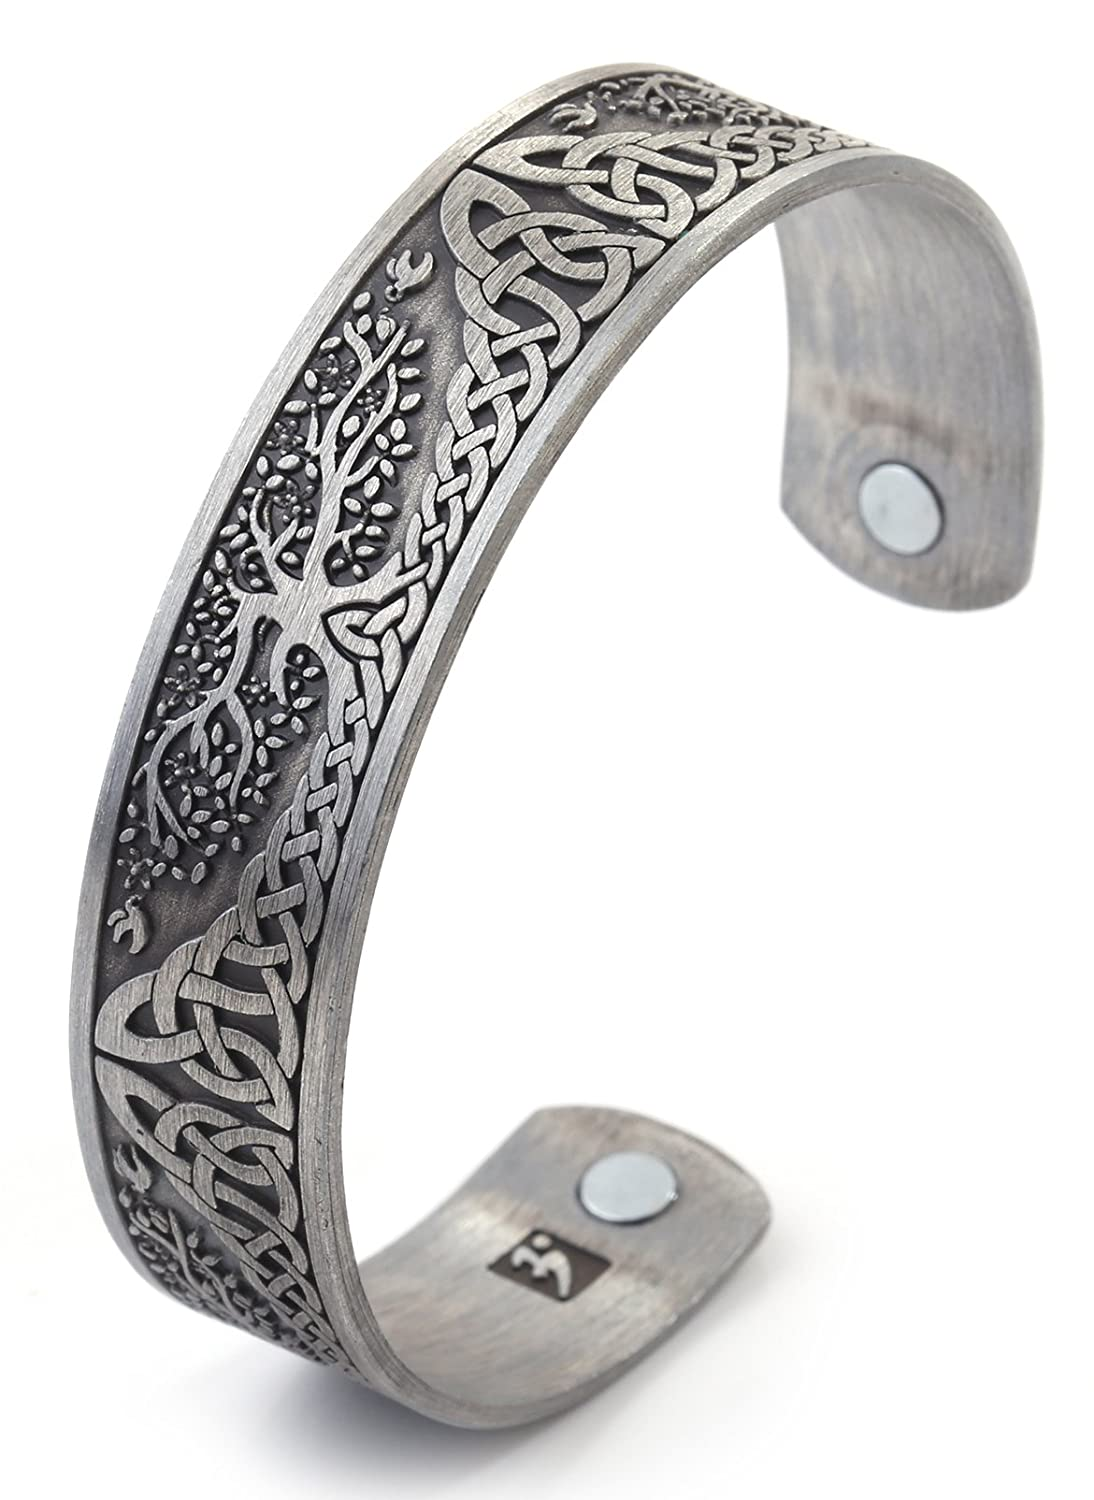 Vintage Tree of Life Irish Knot Totem Health Care Magnet Bangle Cuff Bracelet (Antique Silver) GeXiang B07BKWGJSJ_US